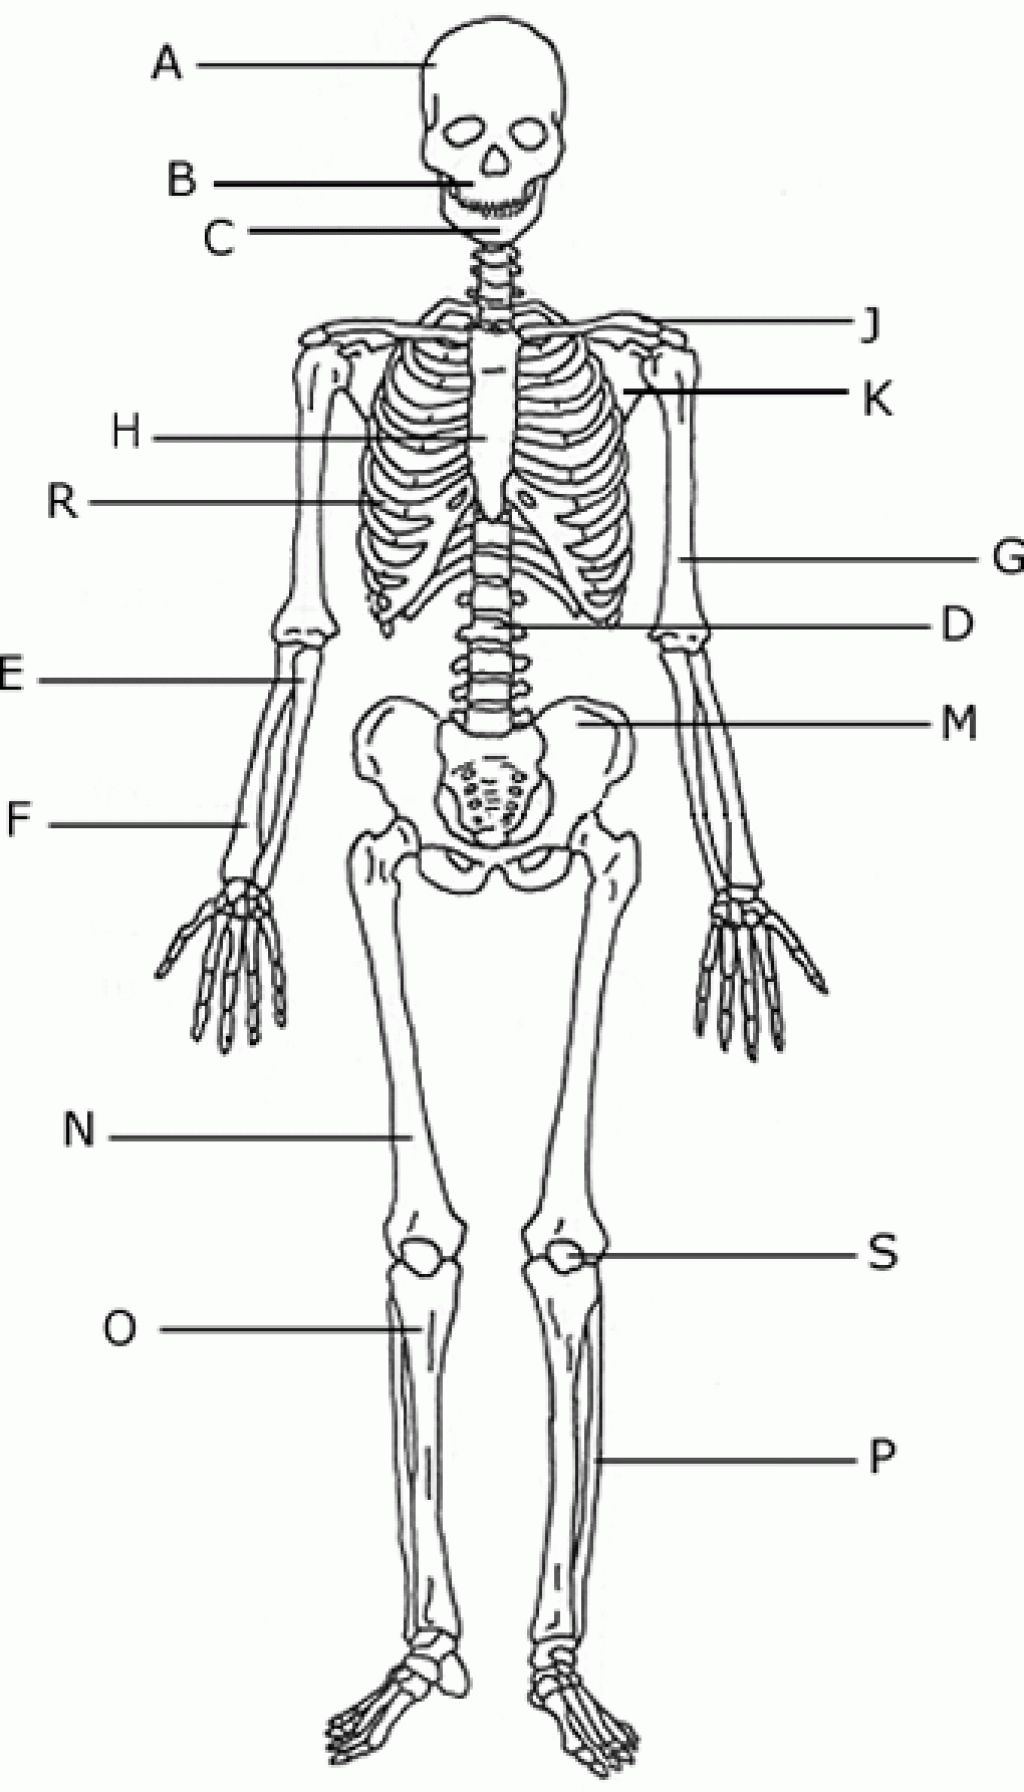 unlabeled diagram of the human skeleton  human skeleton